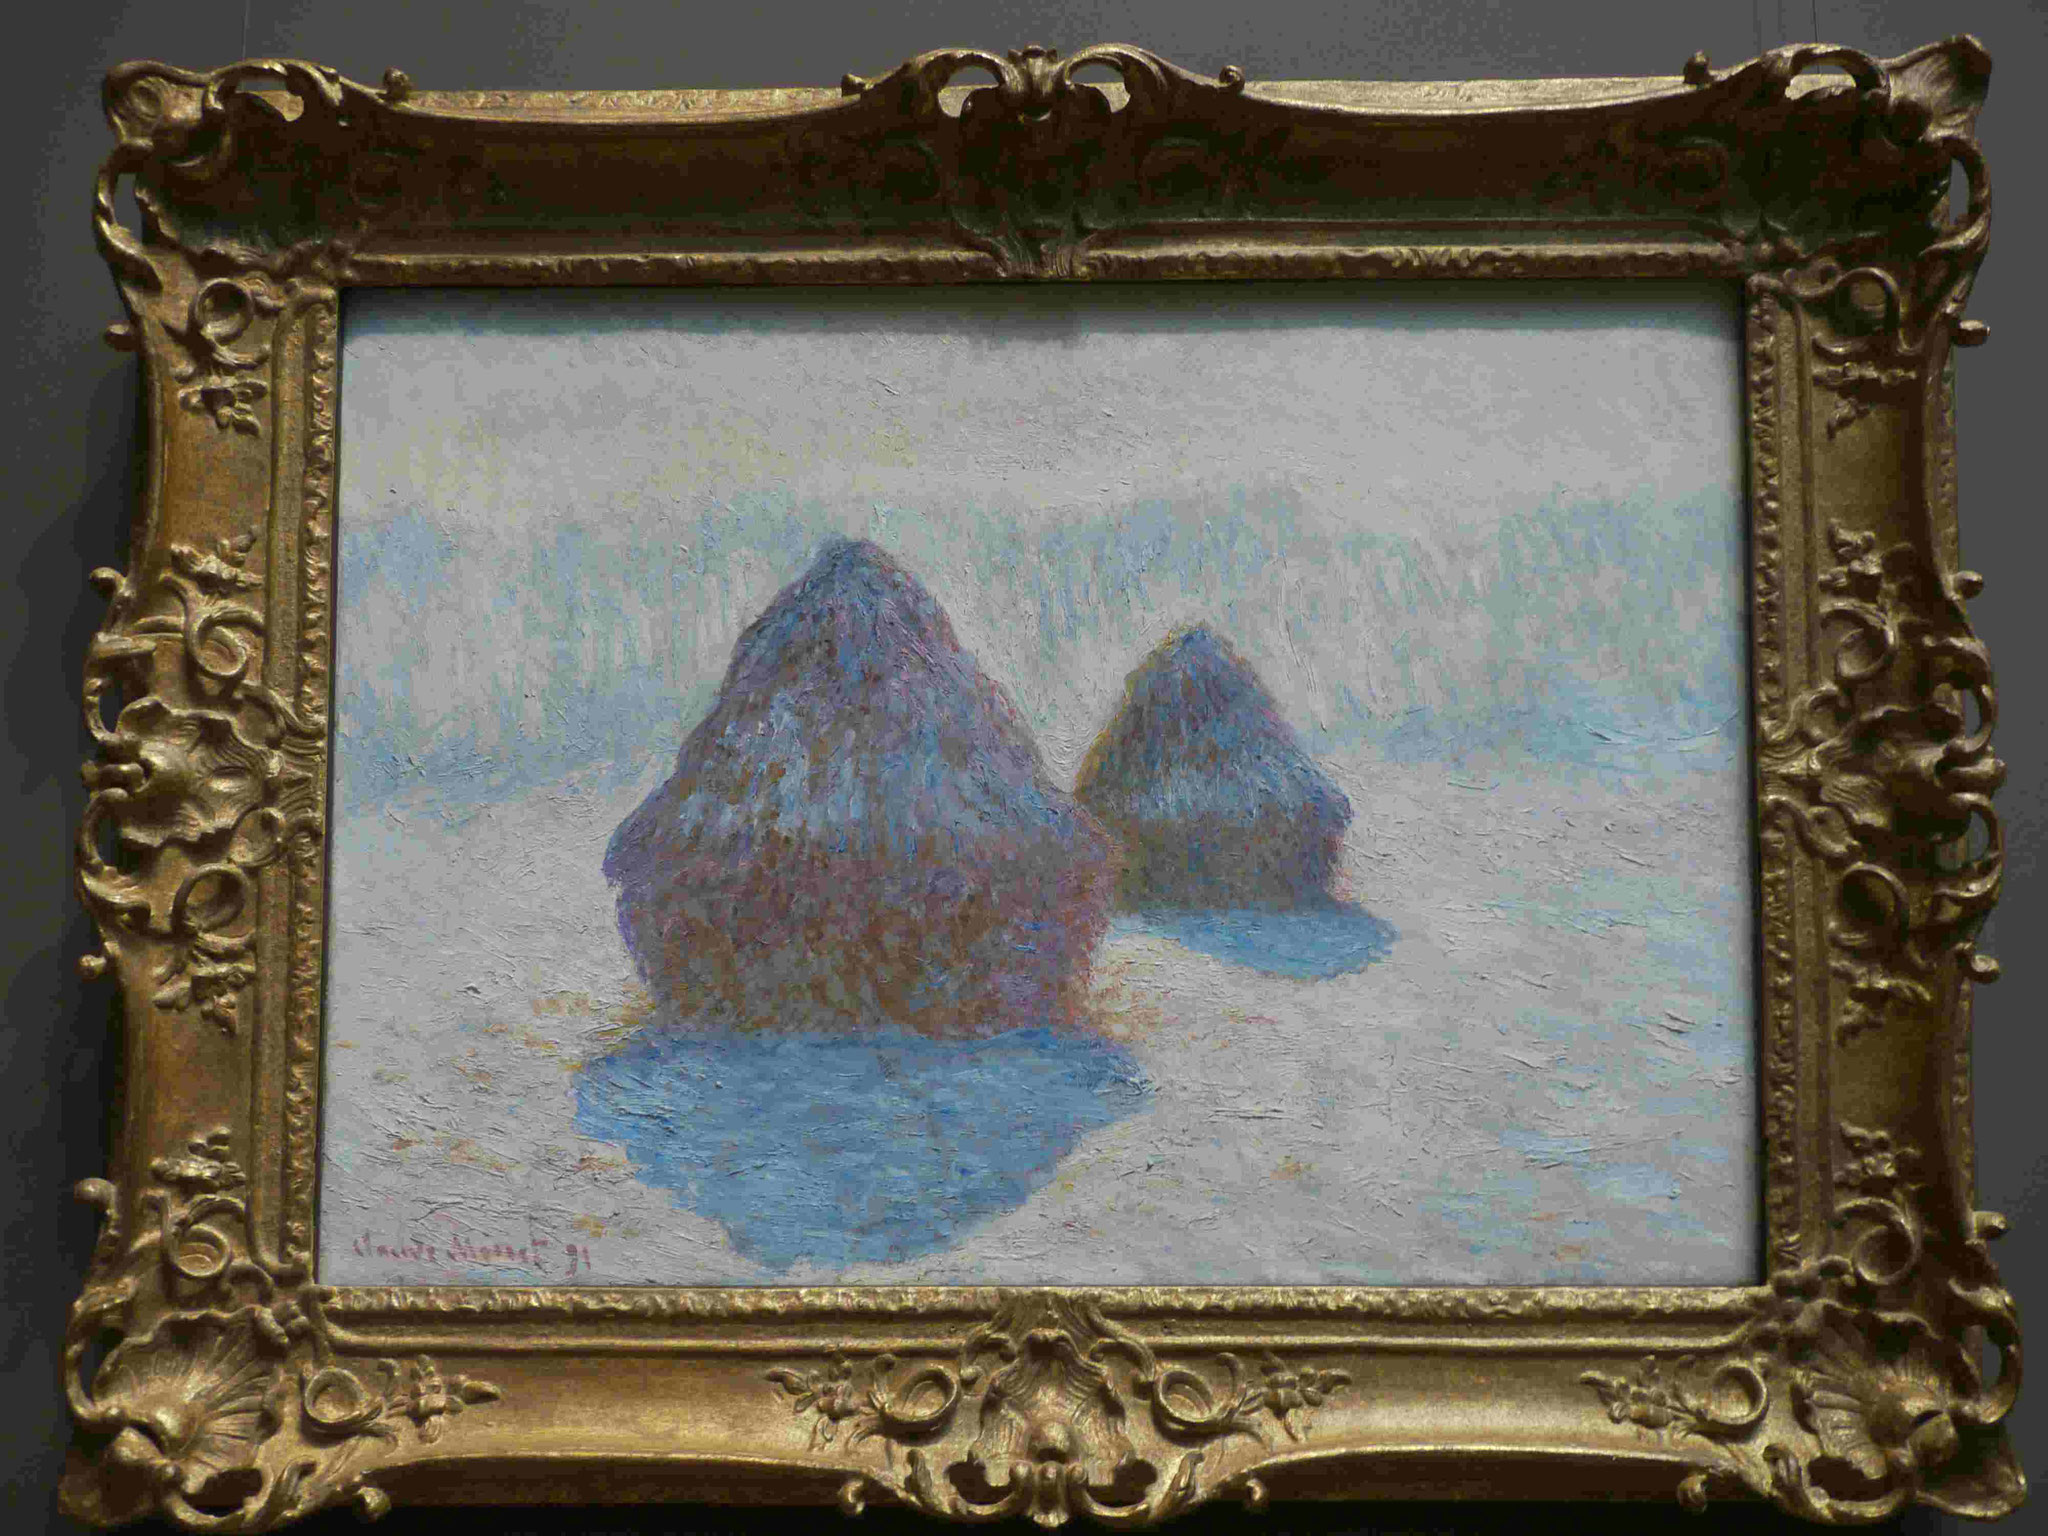 Claude Monet, Met